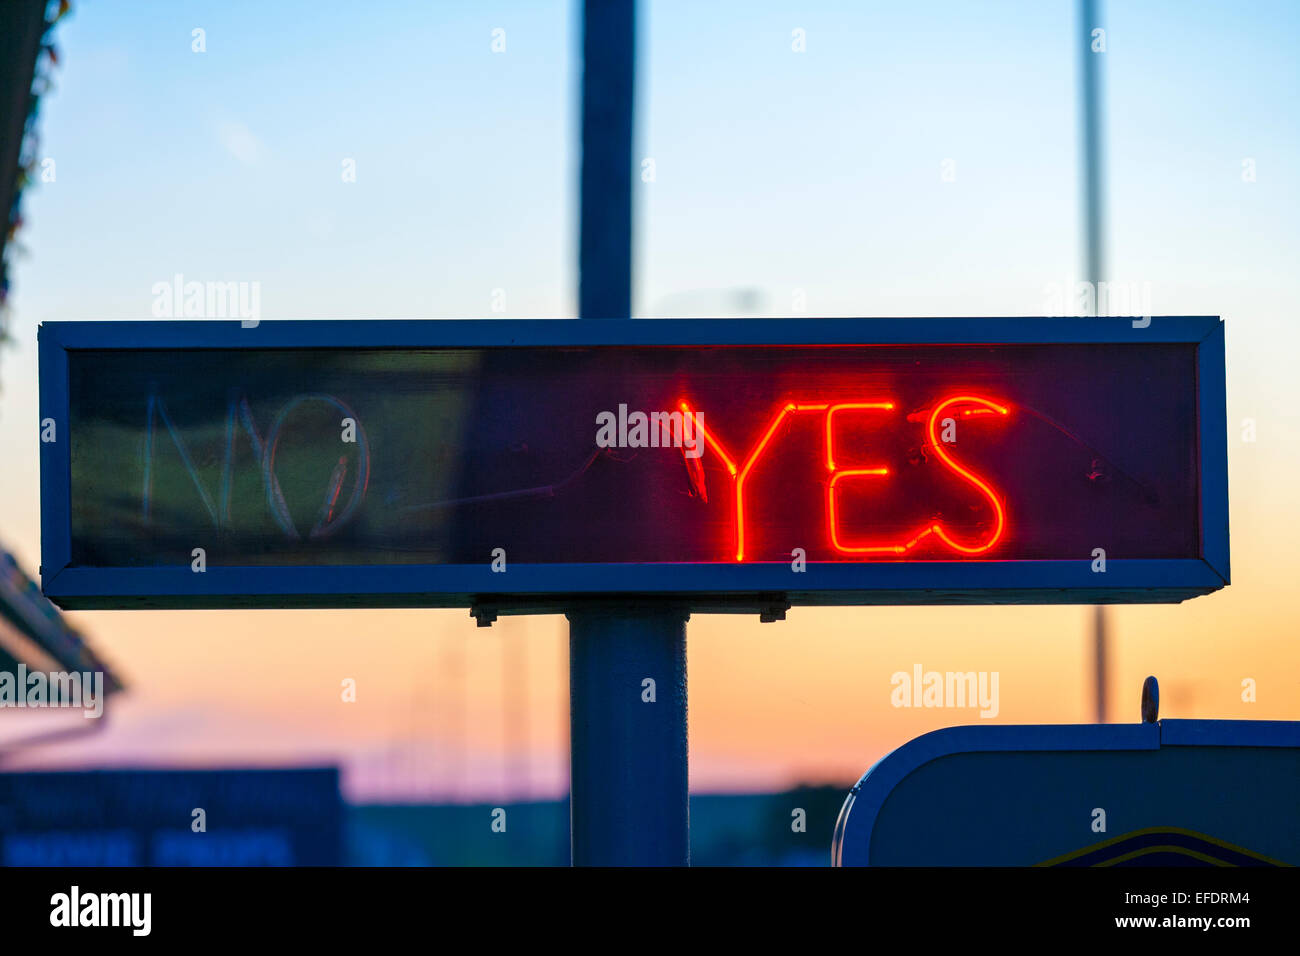 Neon sign Yes or No Vacancy at a US motel with Yes light switched on. - Stock Image